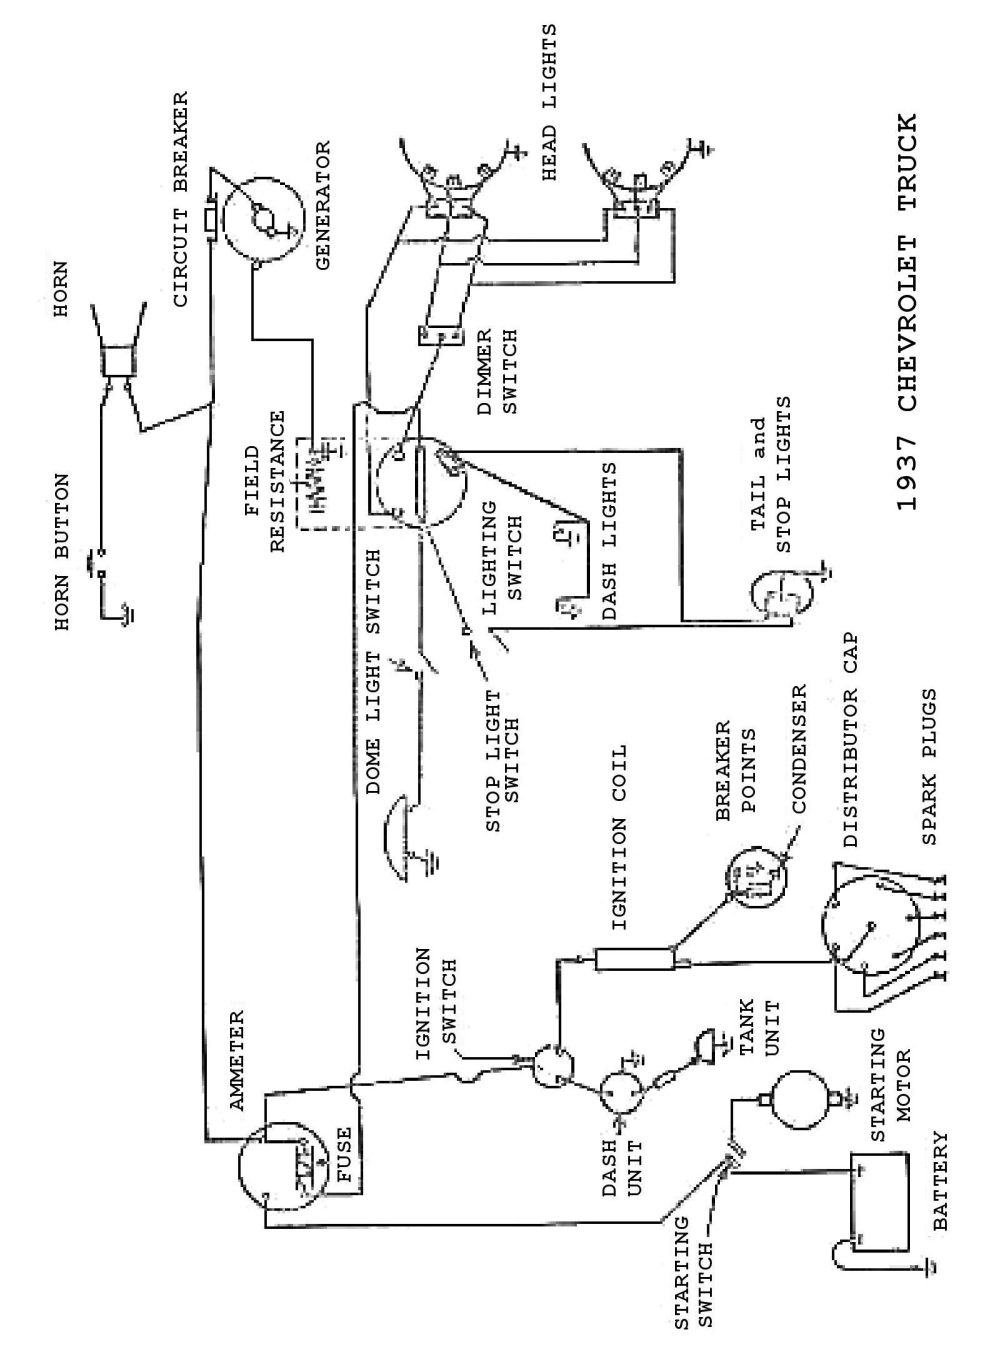 medium resolution of 1950 chevy wiring harness wiring diagram post 1950 chevy truck wiring harness 1950 chevy wiring harness